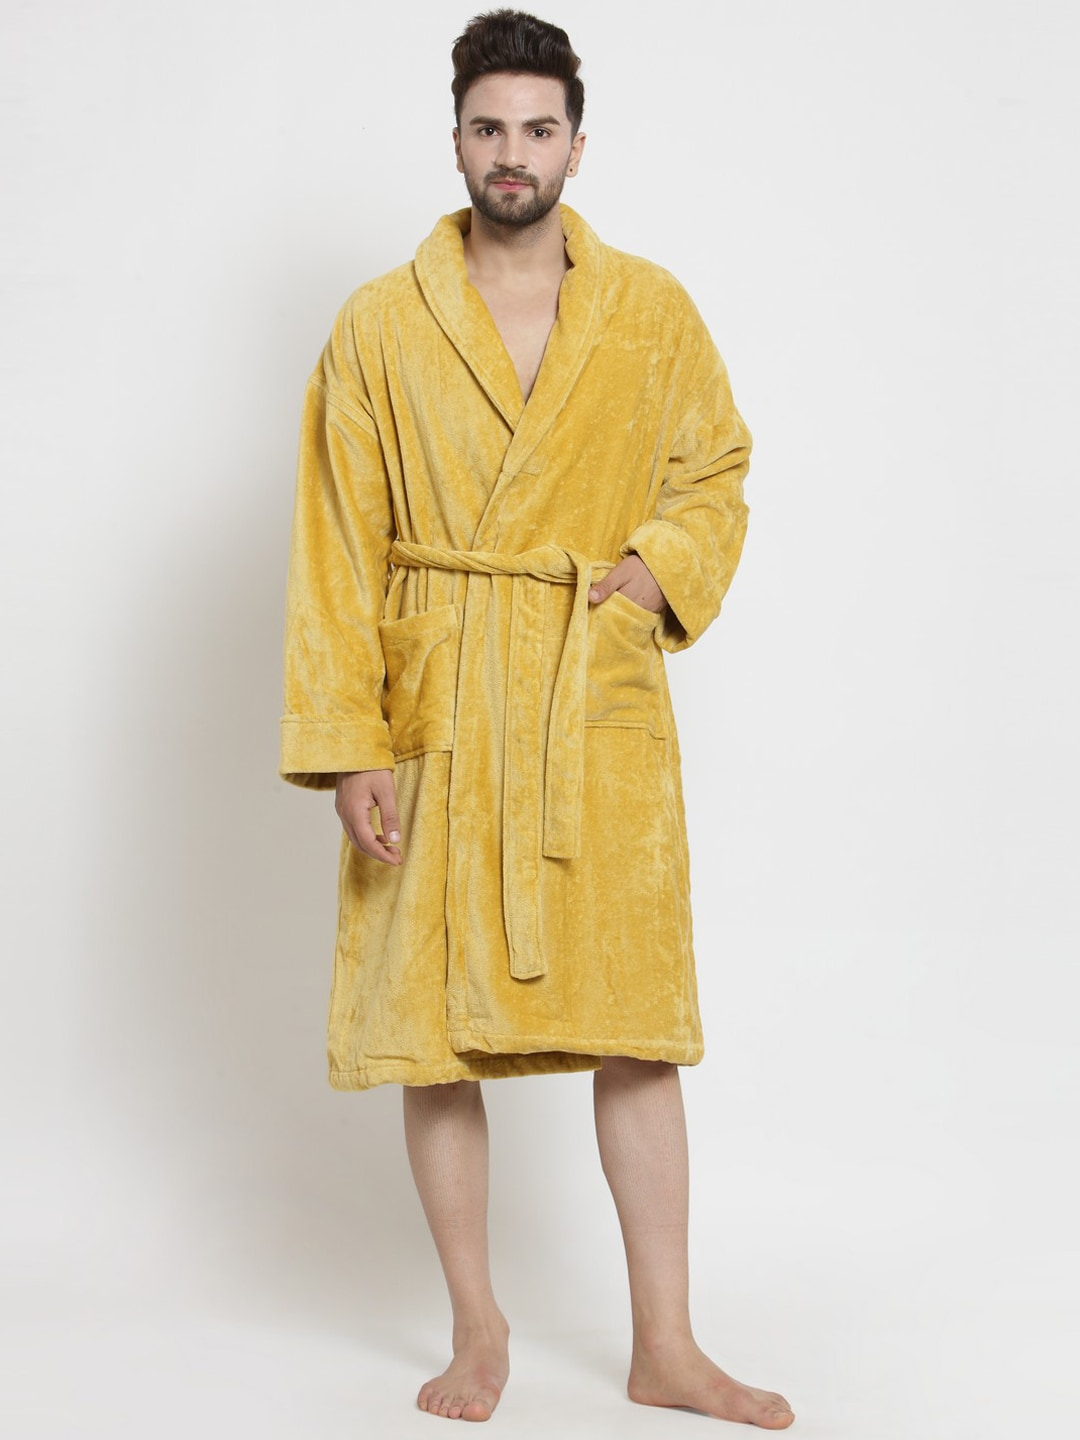 Bath Robe - Buy Bath Robes Online in India  b3ee94fab